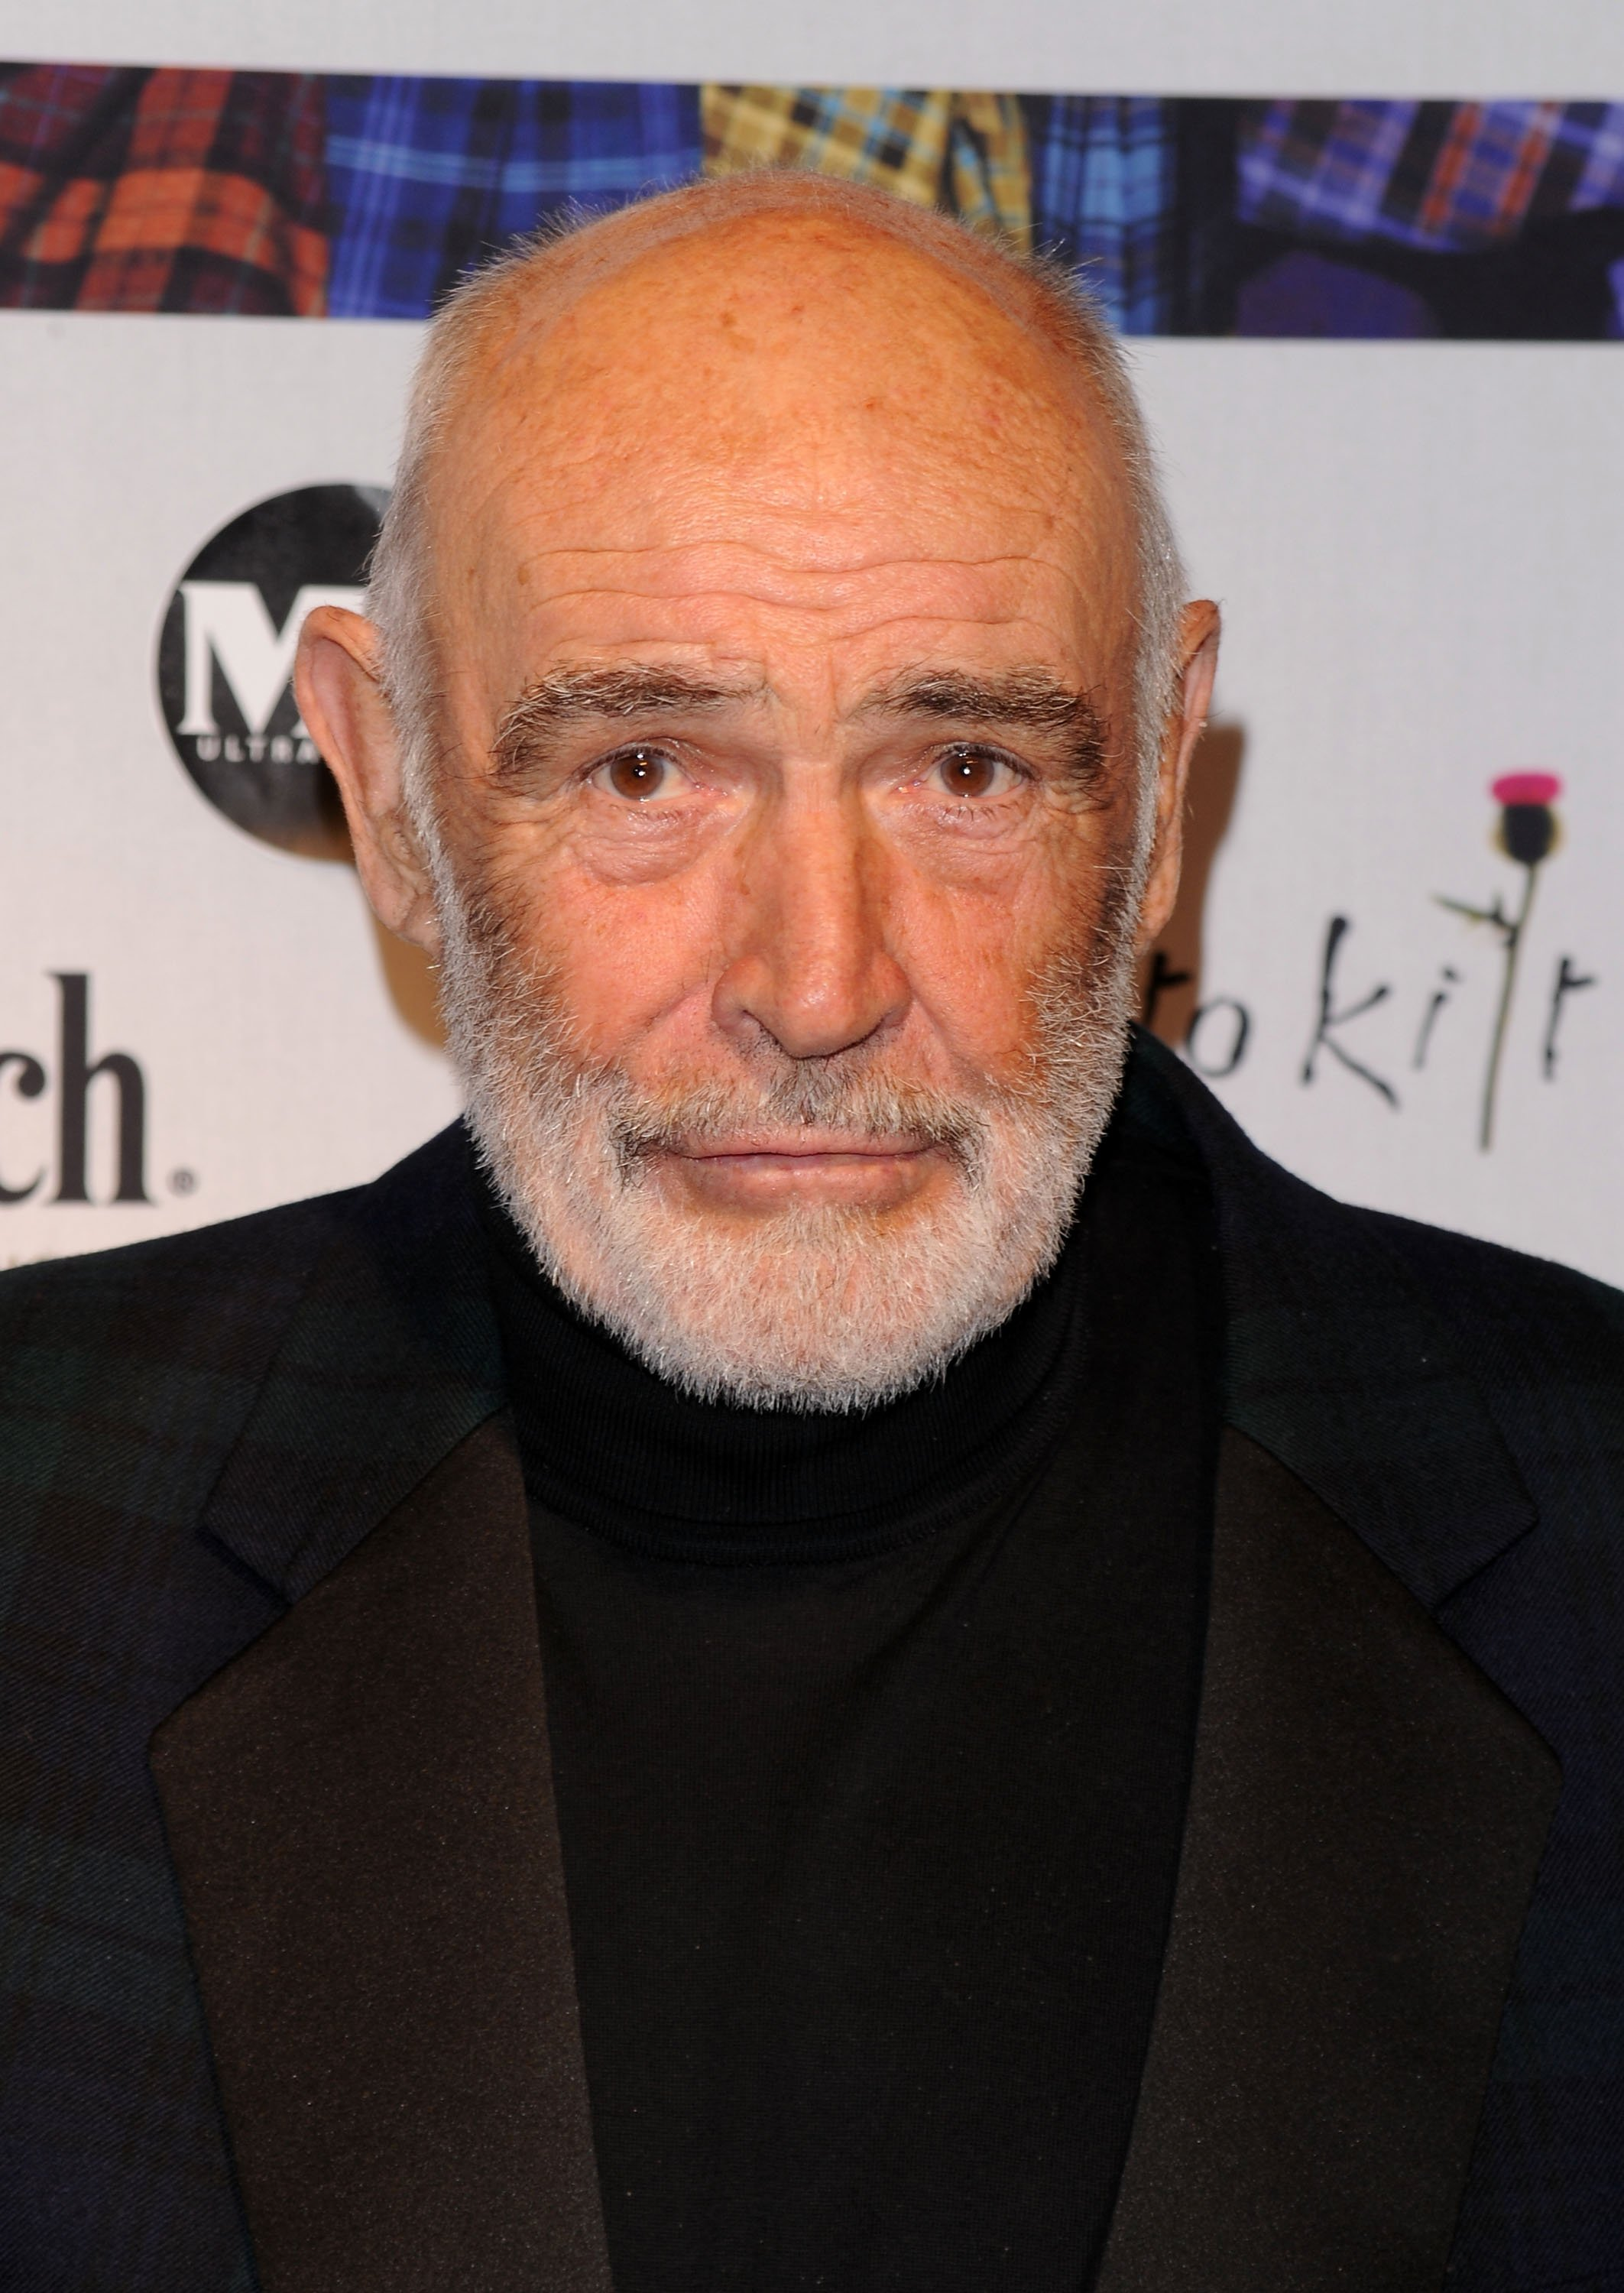 """Sir Sean Connery attends the 8th annual """"Dressed To Kilt"""" Charity Fashion Show on April 5, 2010 in New York City. 